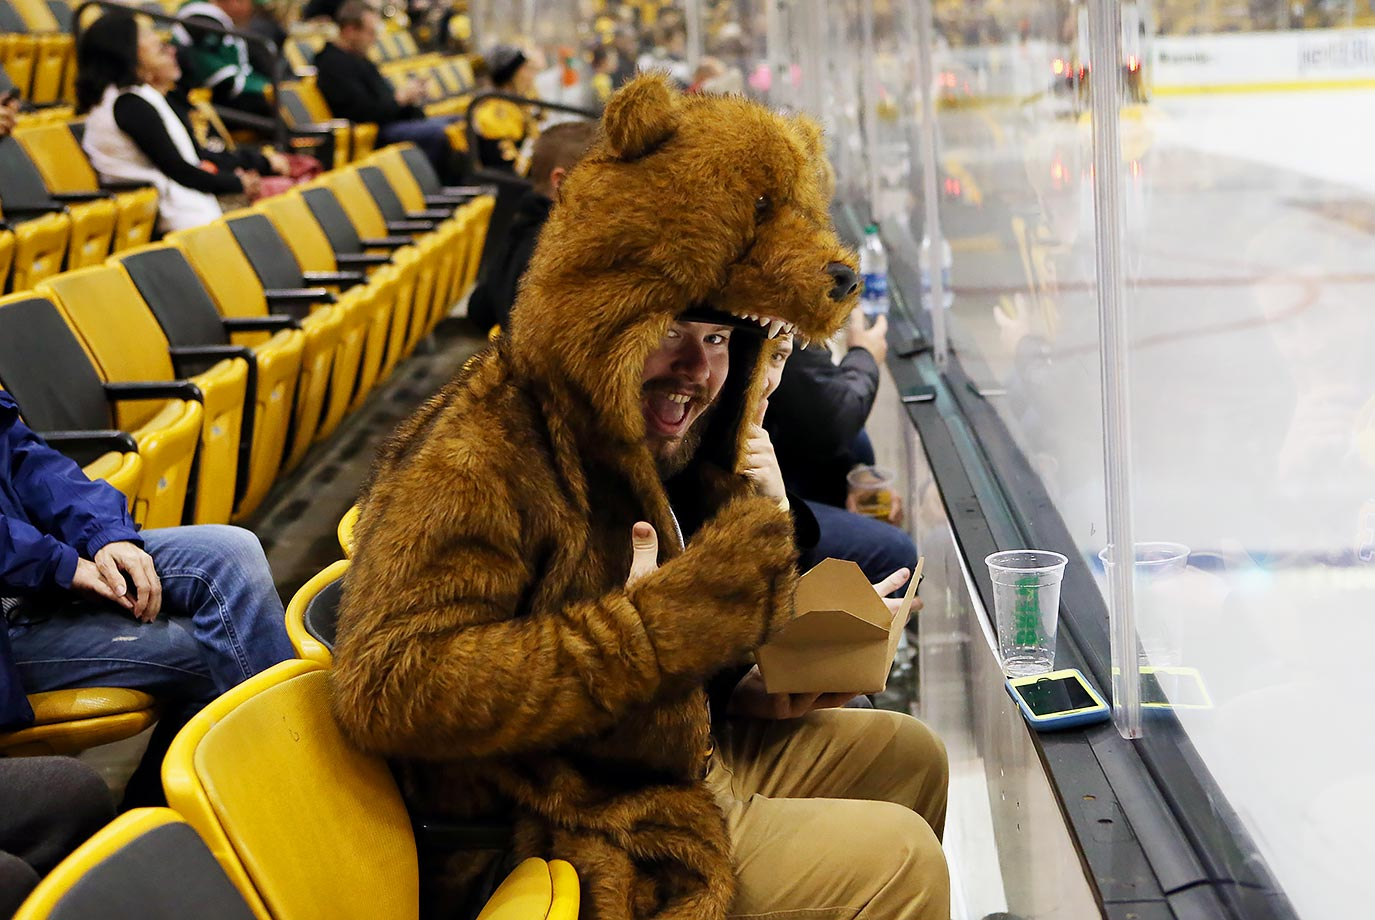 It must get cold sitting so close to the ice for this Boston Bruins fan.